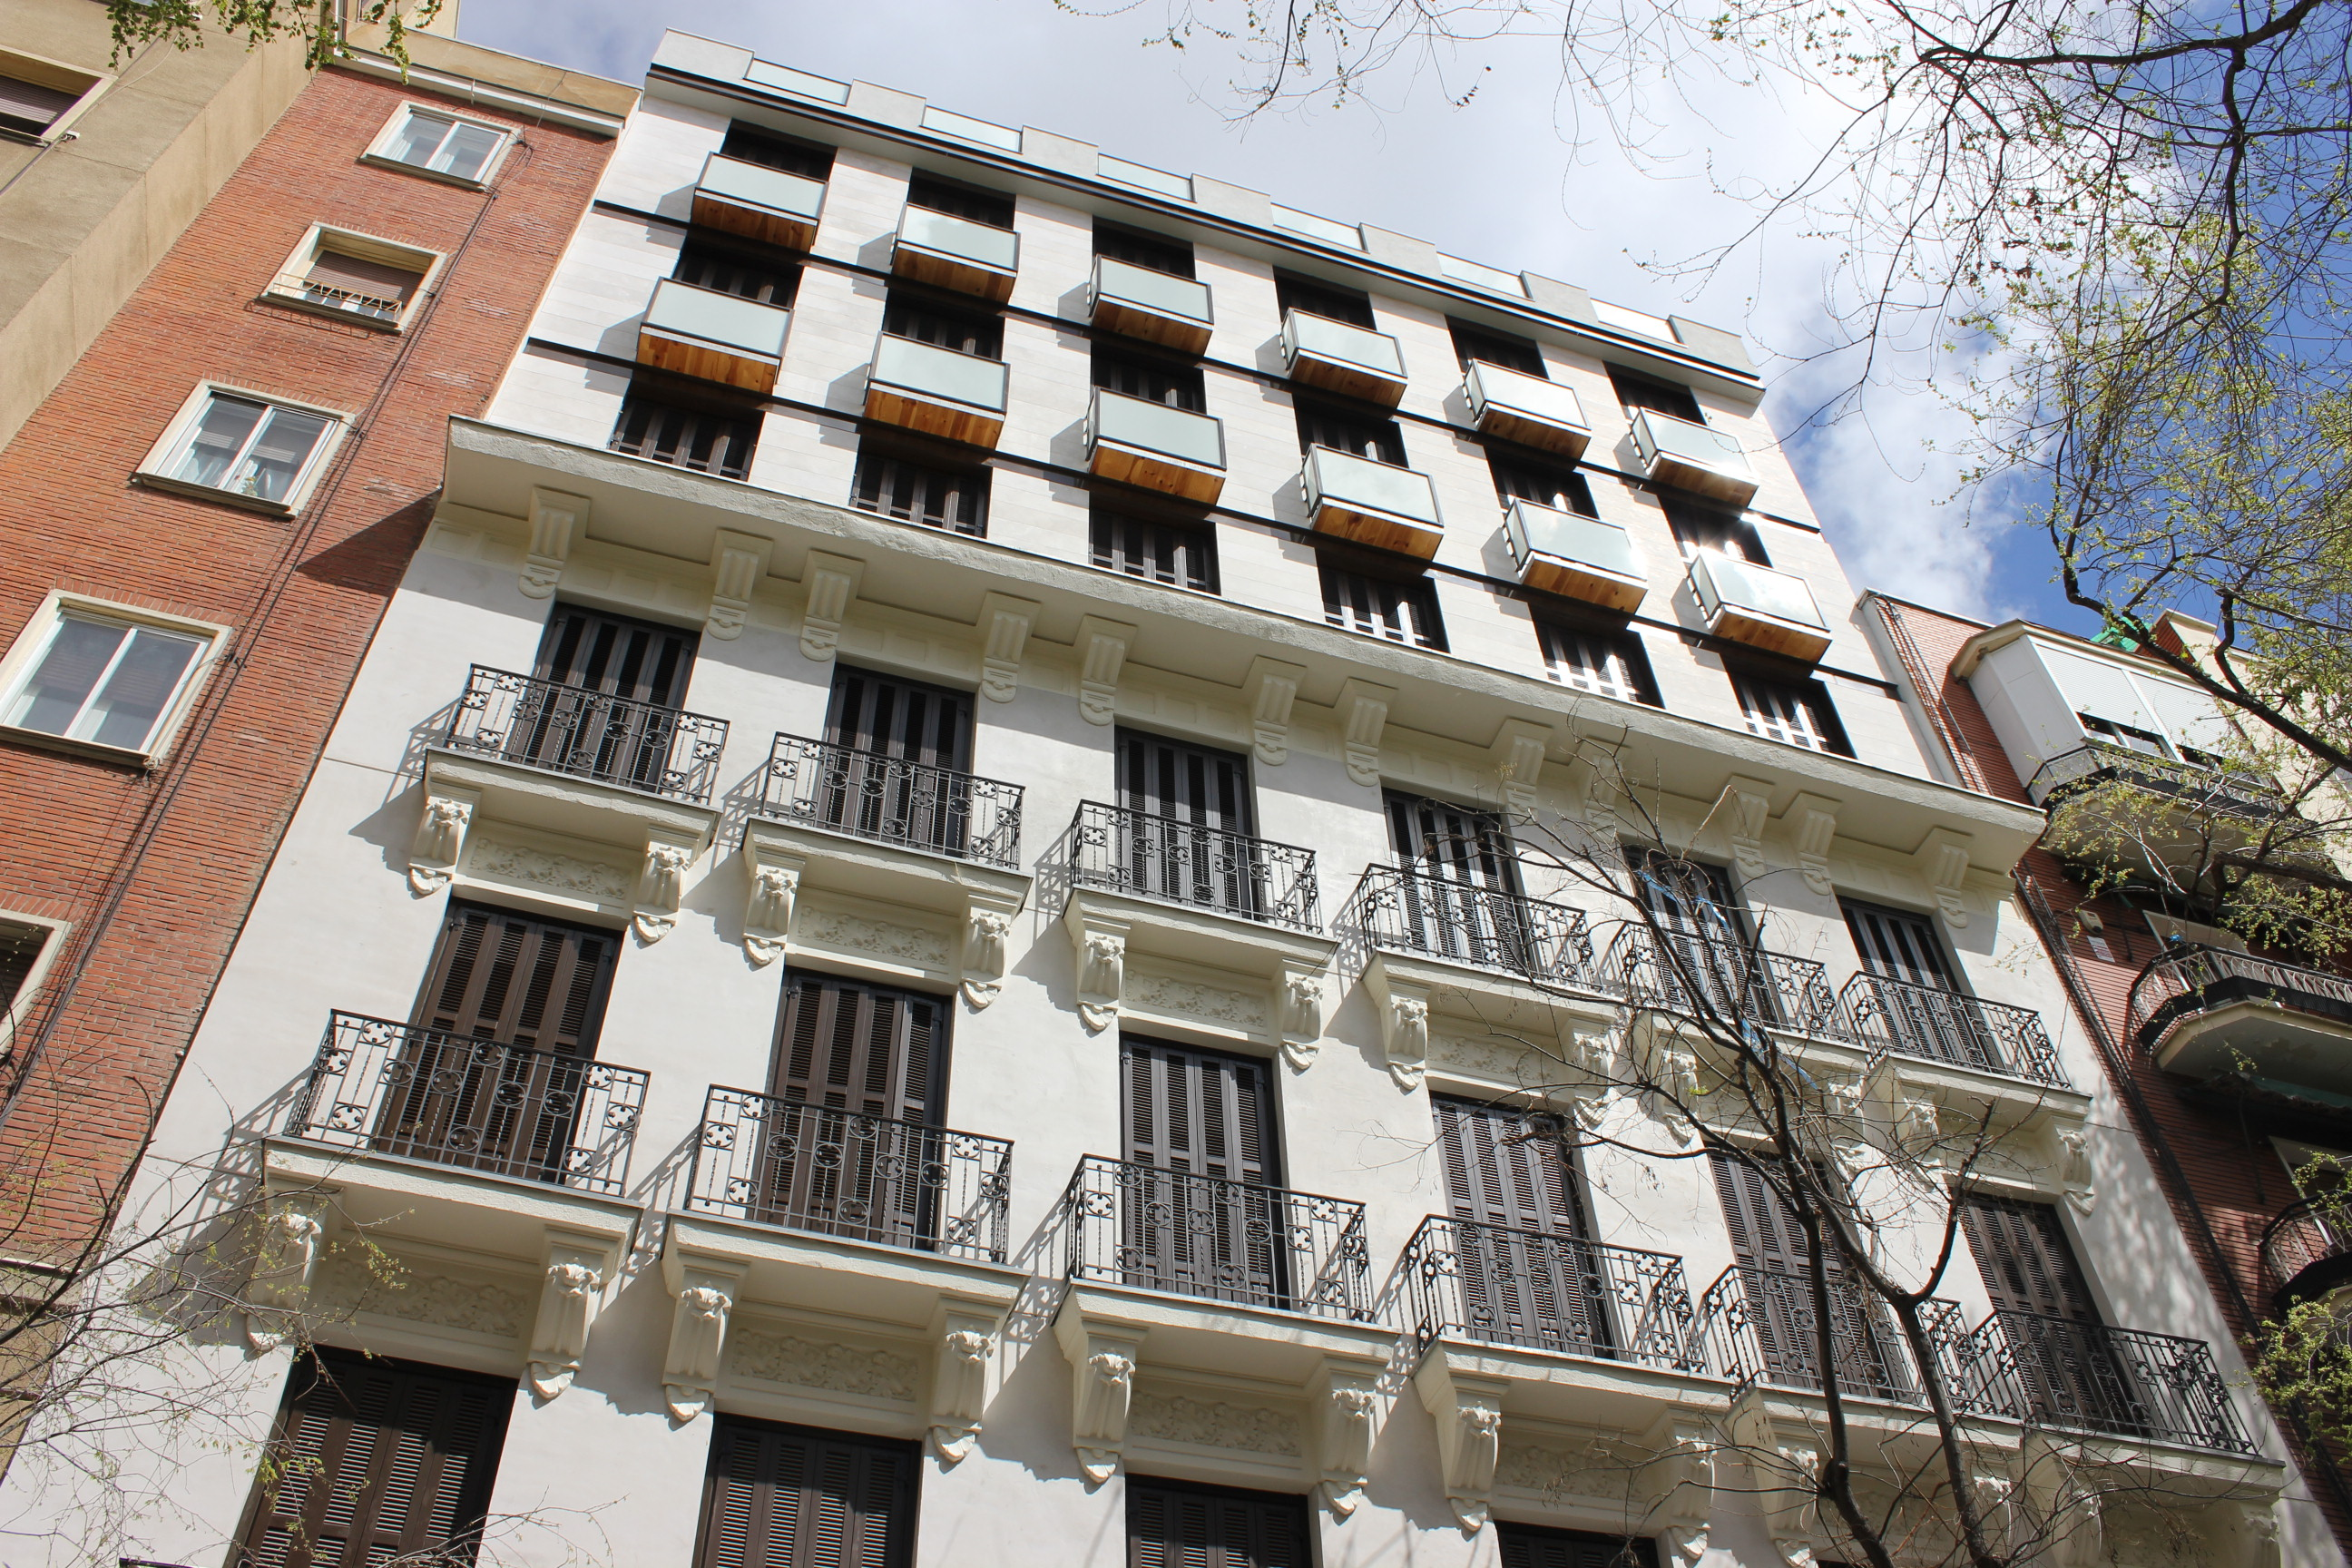 Ampliacion edificio 001